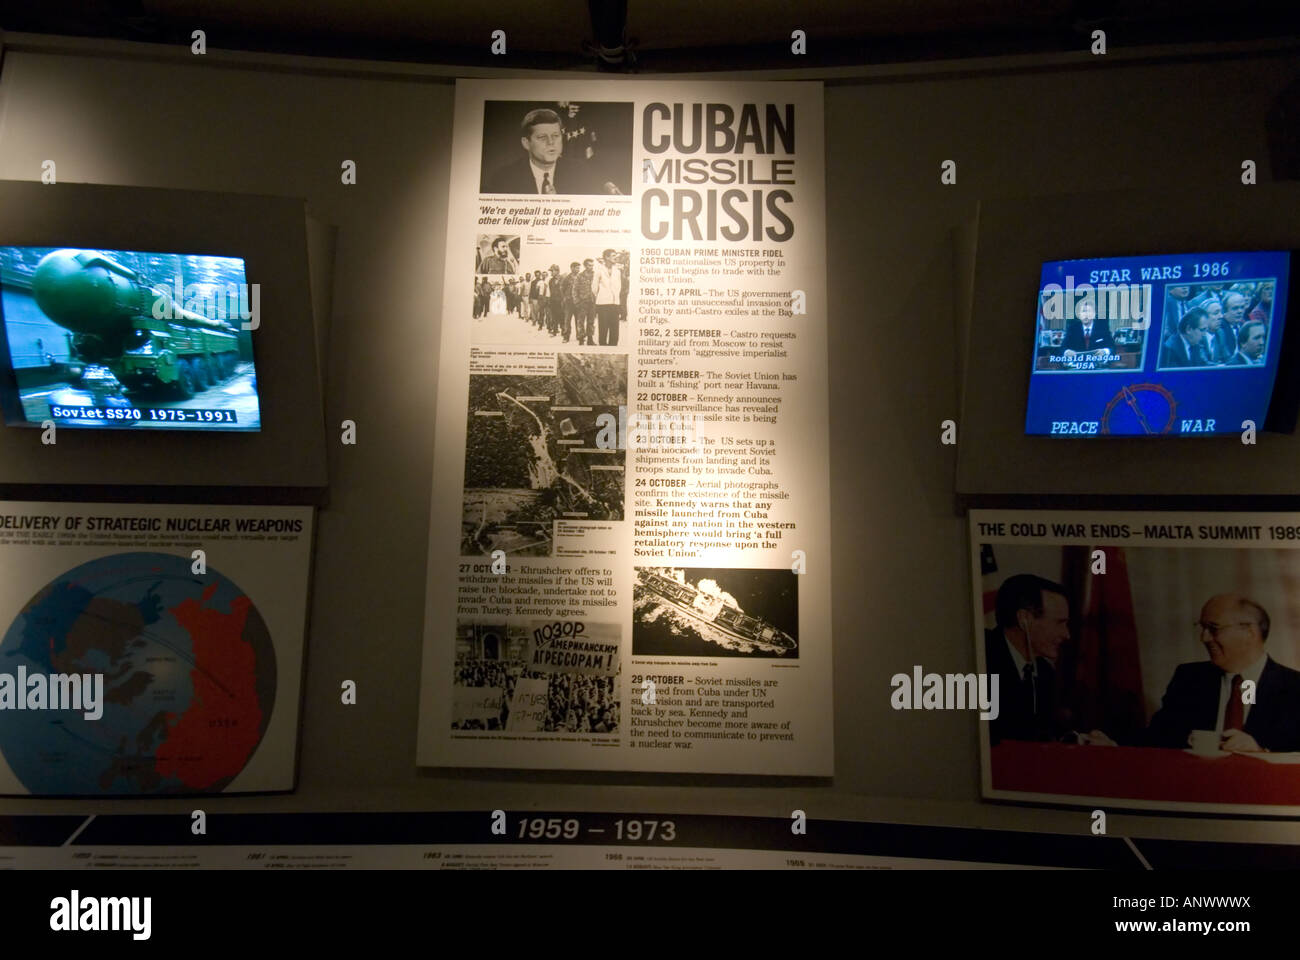 cuban missile crisis notice sign poster 1959 1973, imperial war museum london - Stock Image